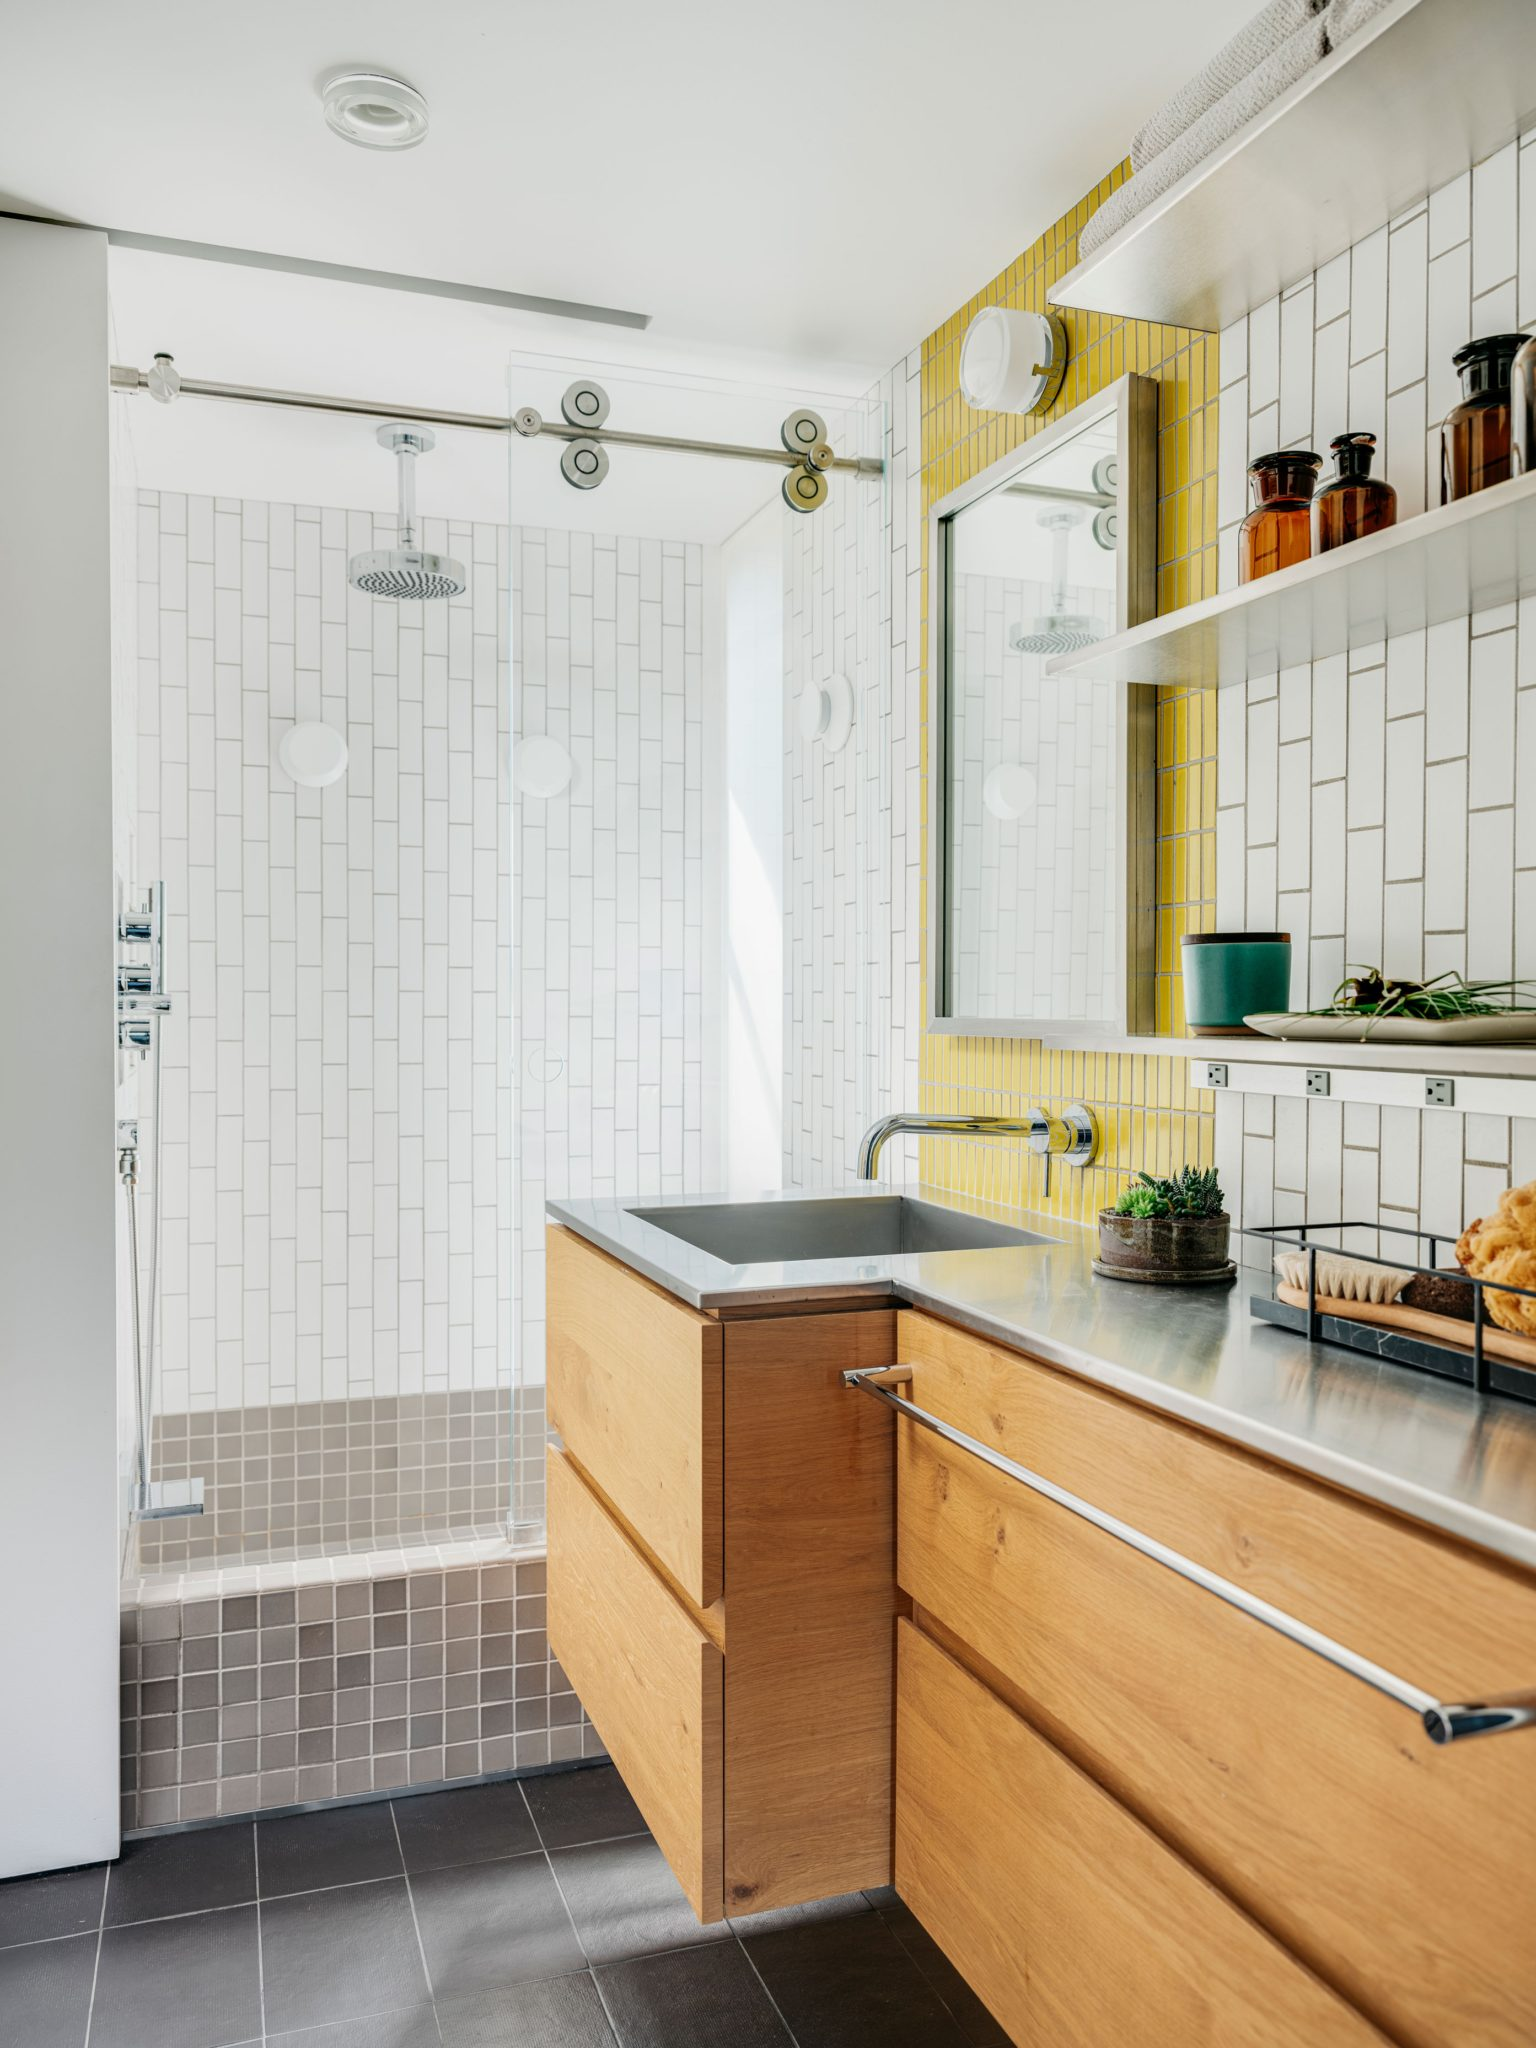 Custom glass sidelightsin the guest bathallow extra light to enter into the space. Stainless steel countertops are paired with awhite oak vanity.The floor tiles were designed by Patricia Urquiola, and the wall tiles are from Heath Ceramics; the faucets are from Blu Bathworks.